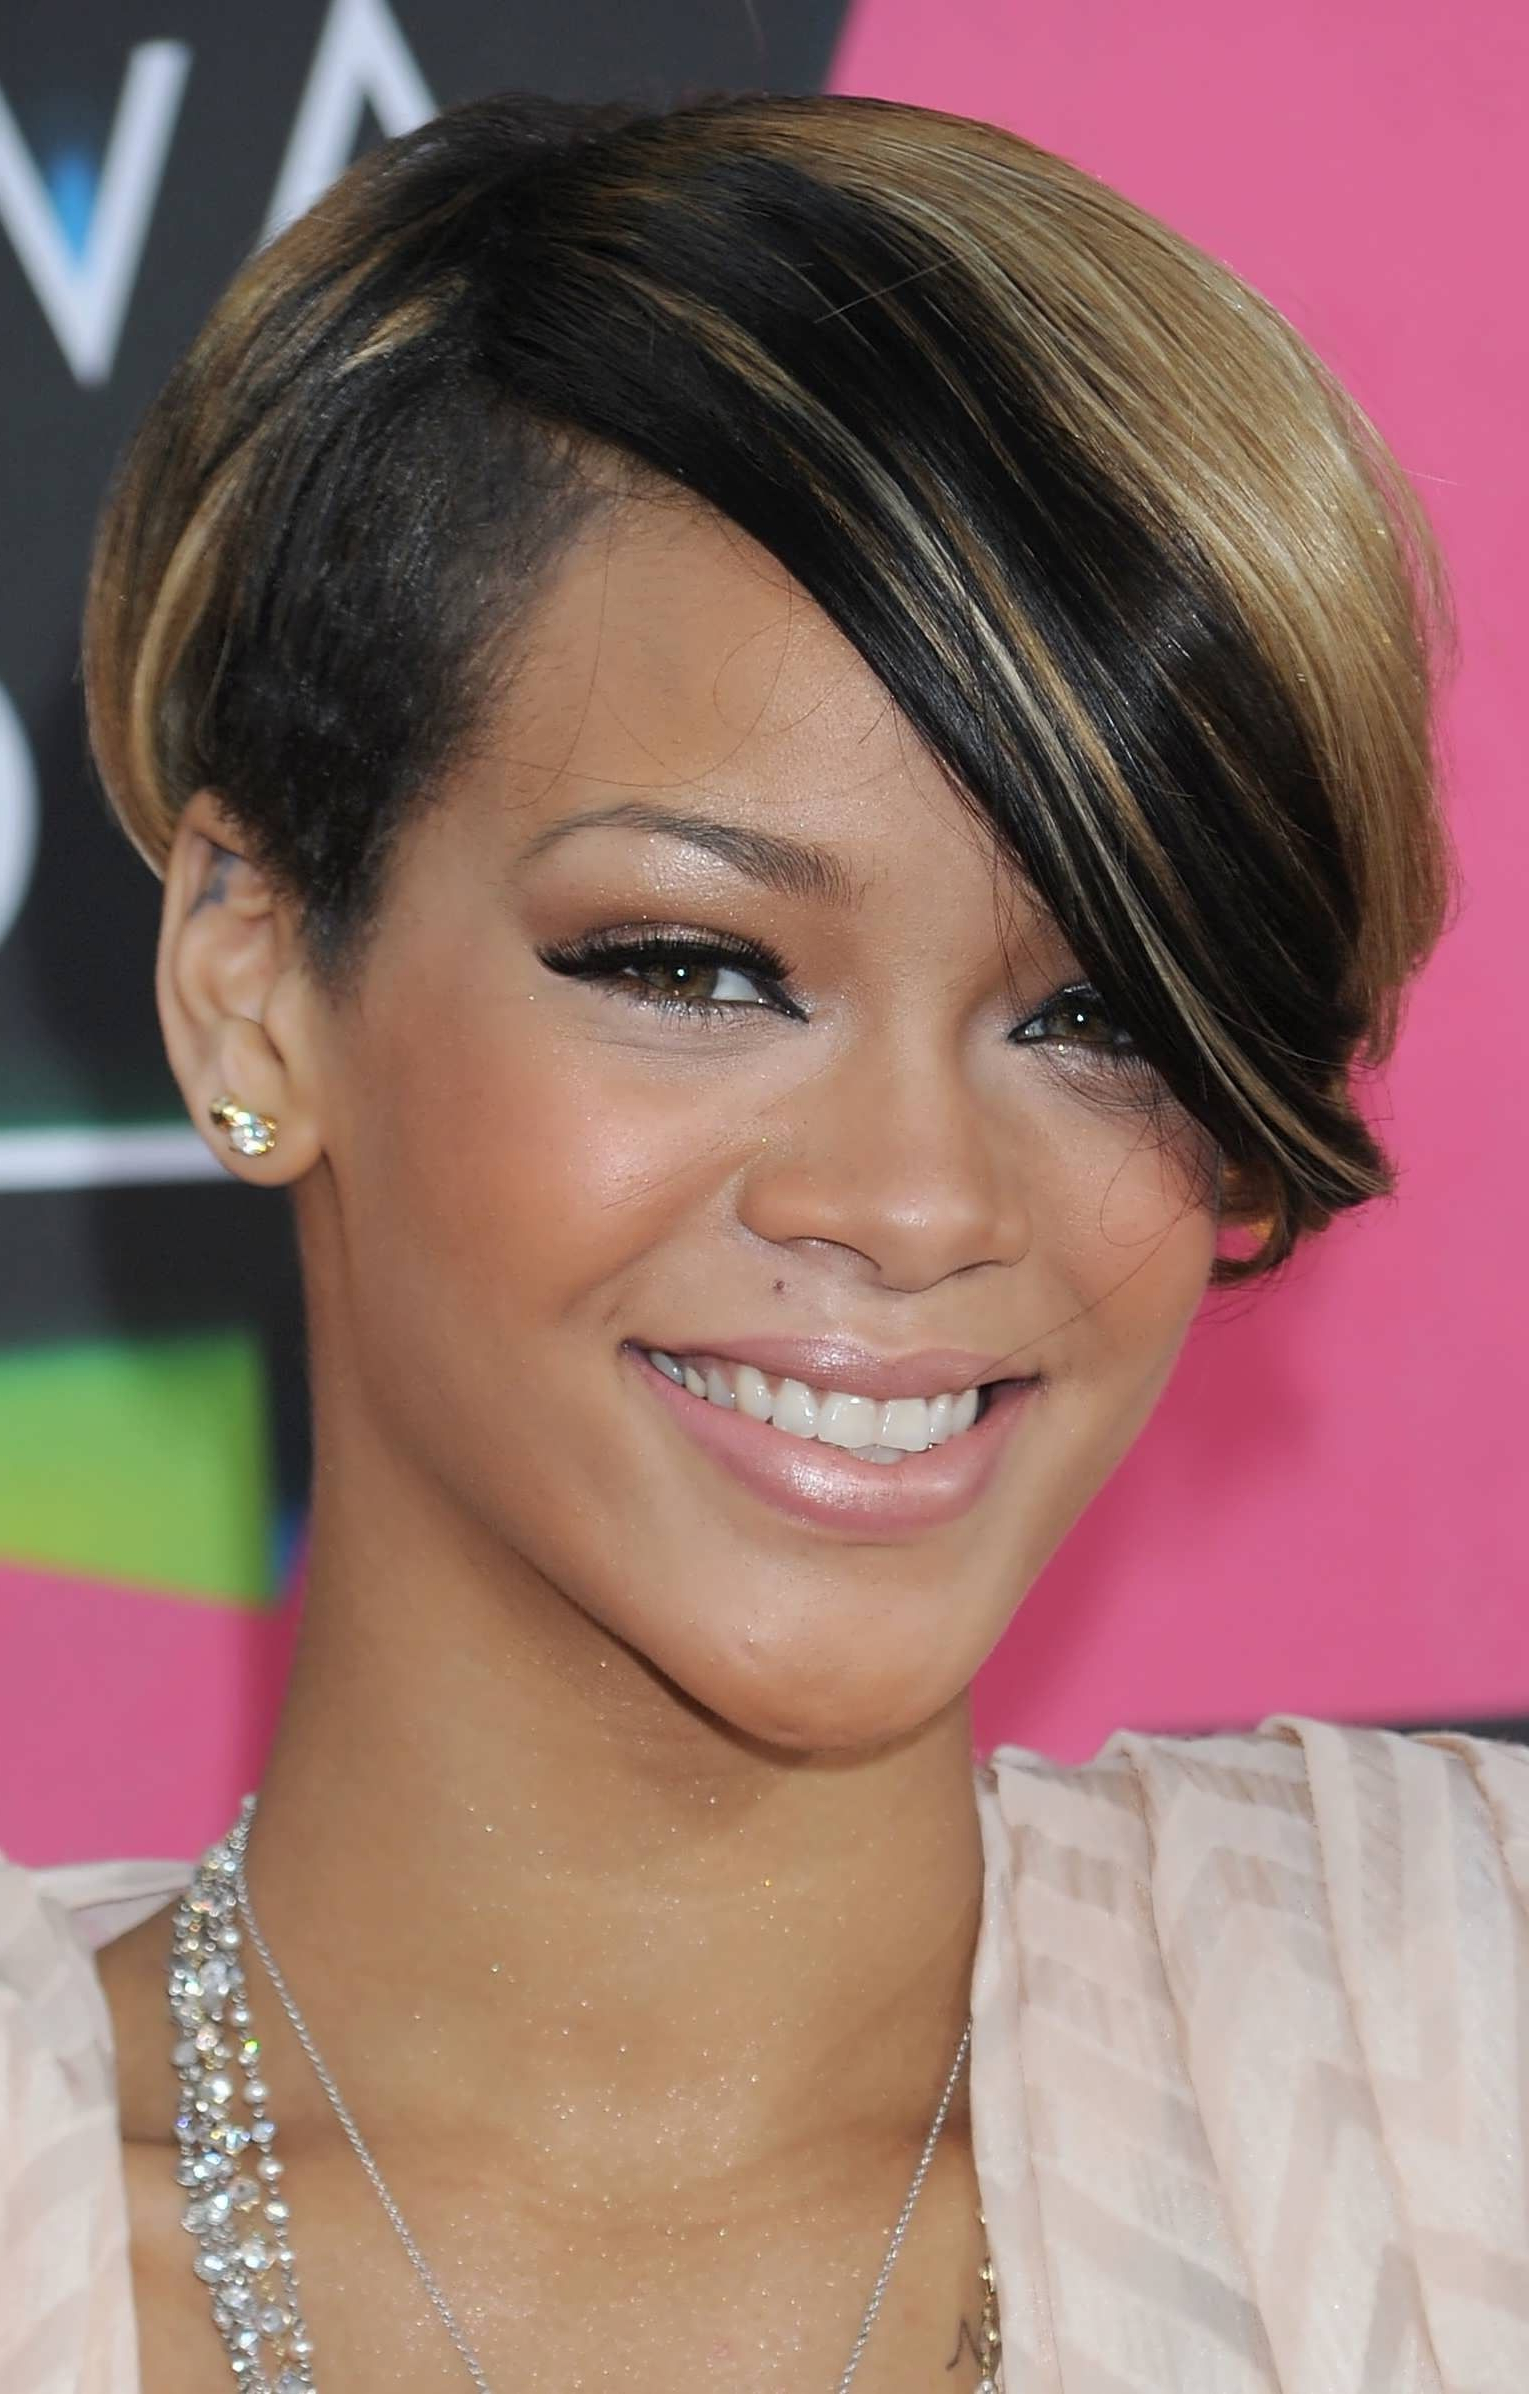 Pinbestenfrisurcom On Besten Frisur   Pinterest   Short Layered Pertaining To Short Hairstyles For Black Women With Oval Faces (View 6 of 25)